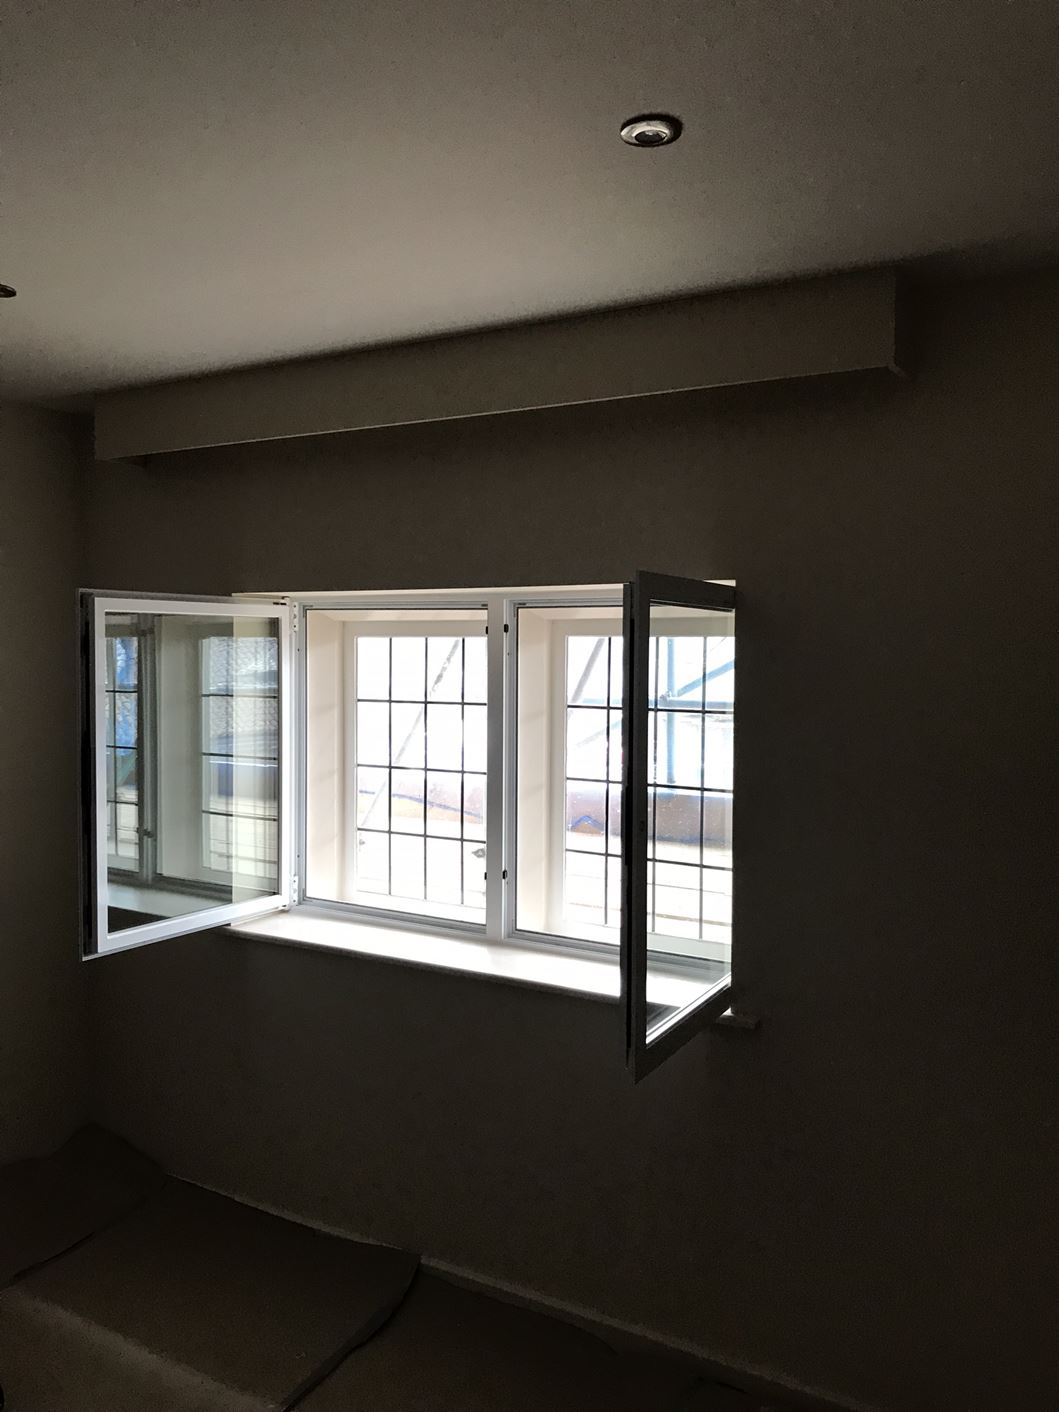 Interior view of Secondary Glazing Chesterfield Installation carried out by MW Window Systems